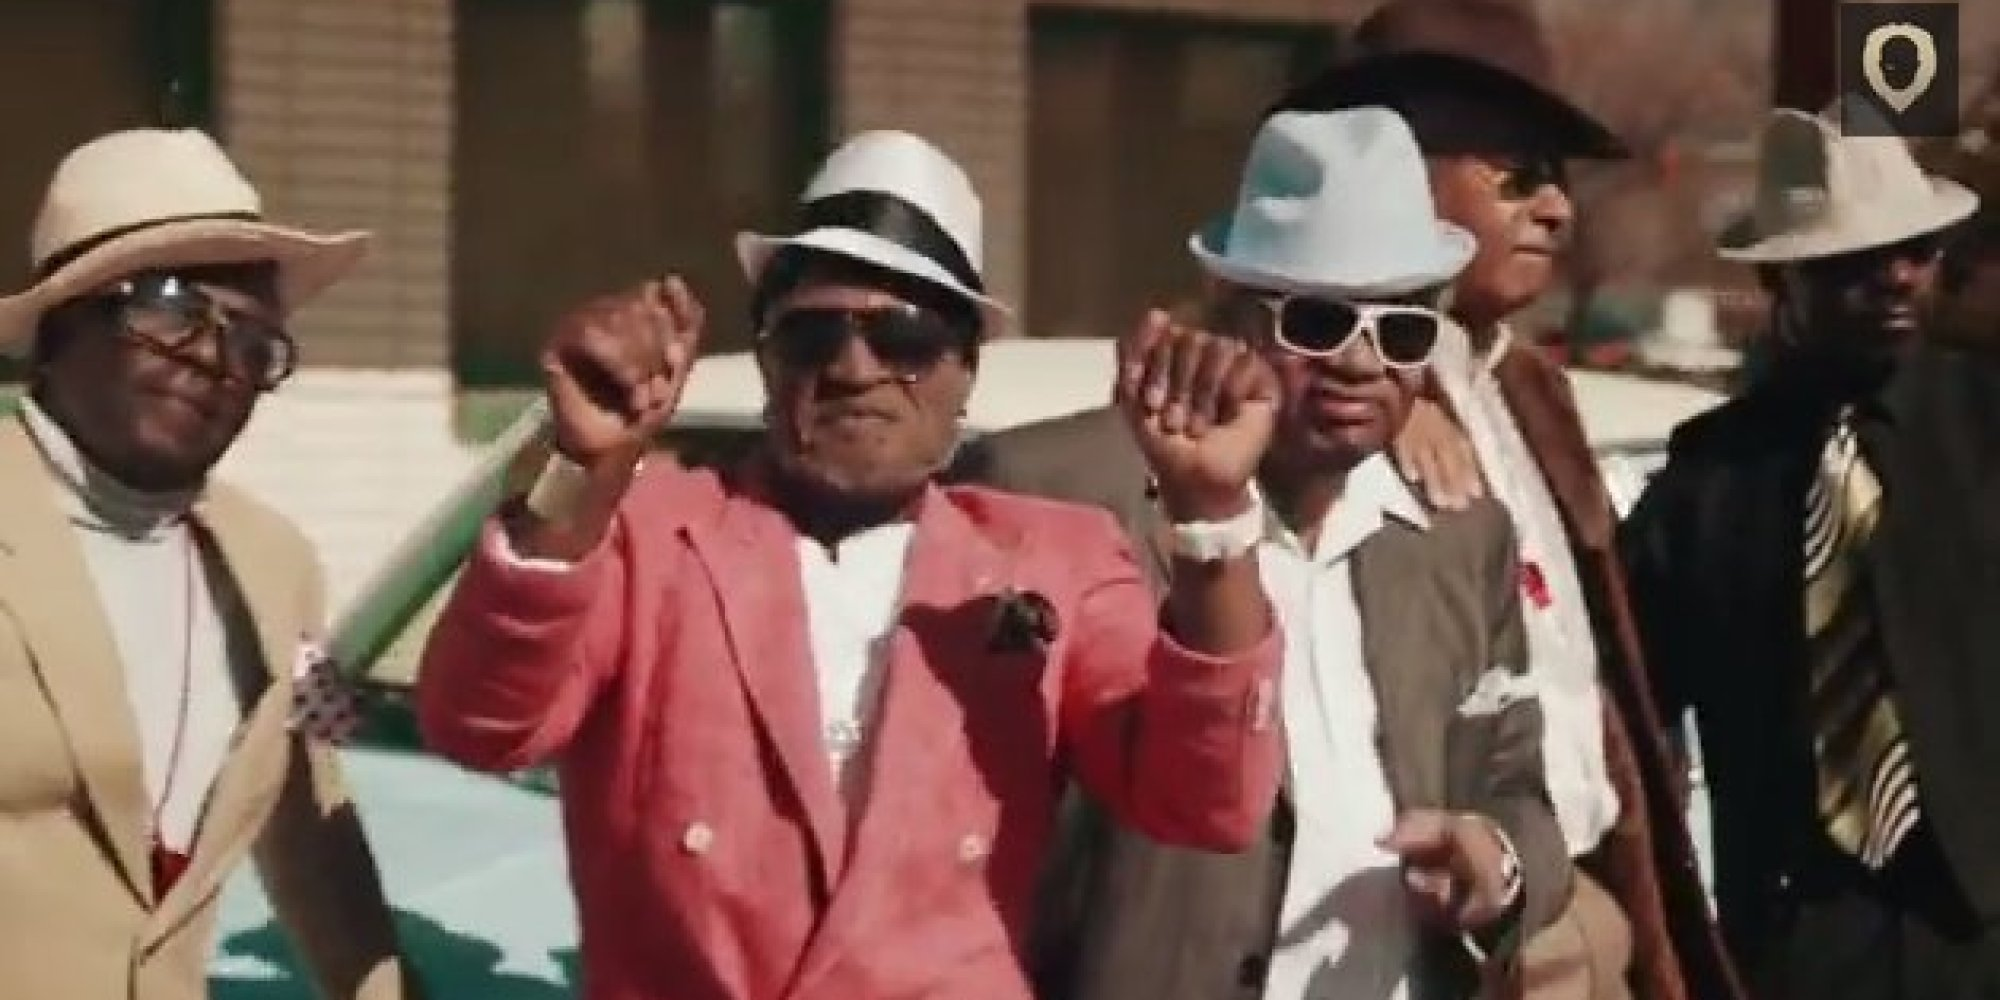 Uptown funk featuring dancing seniors will make you want to get up